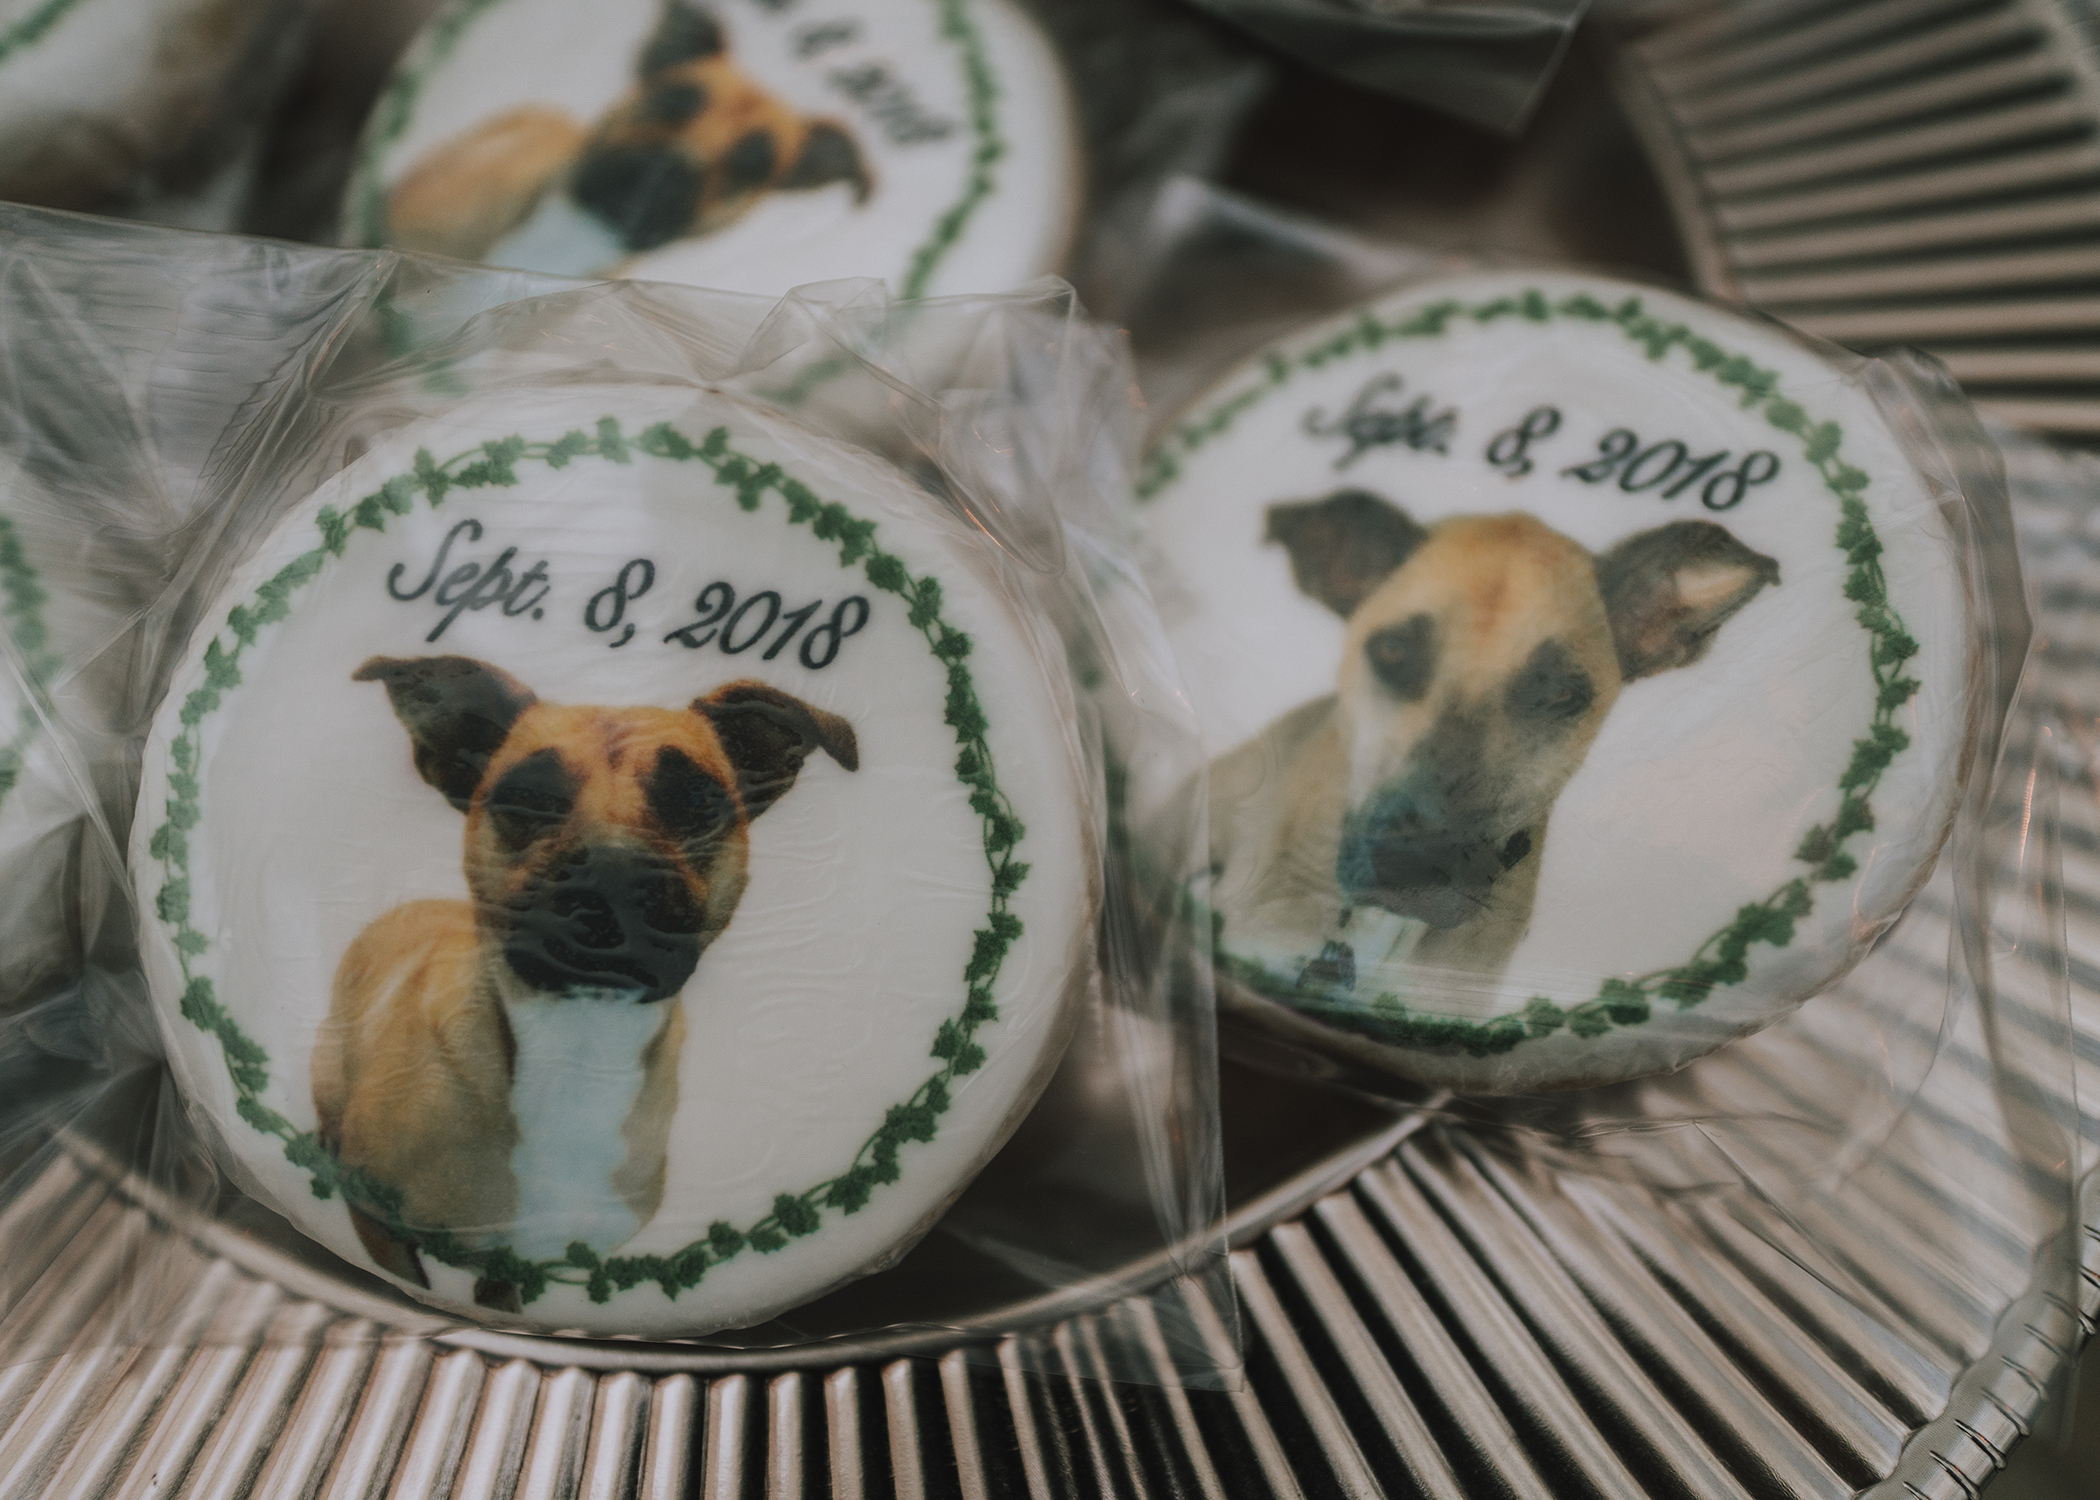 puppy cookies Foellinger-Freimann Botanical Conservatory indianapolis indiana hannah bergman Photography